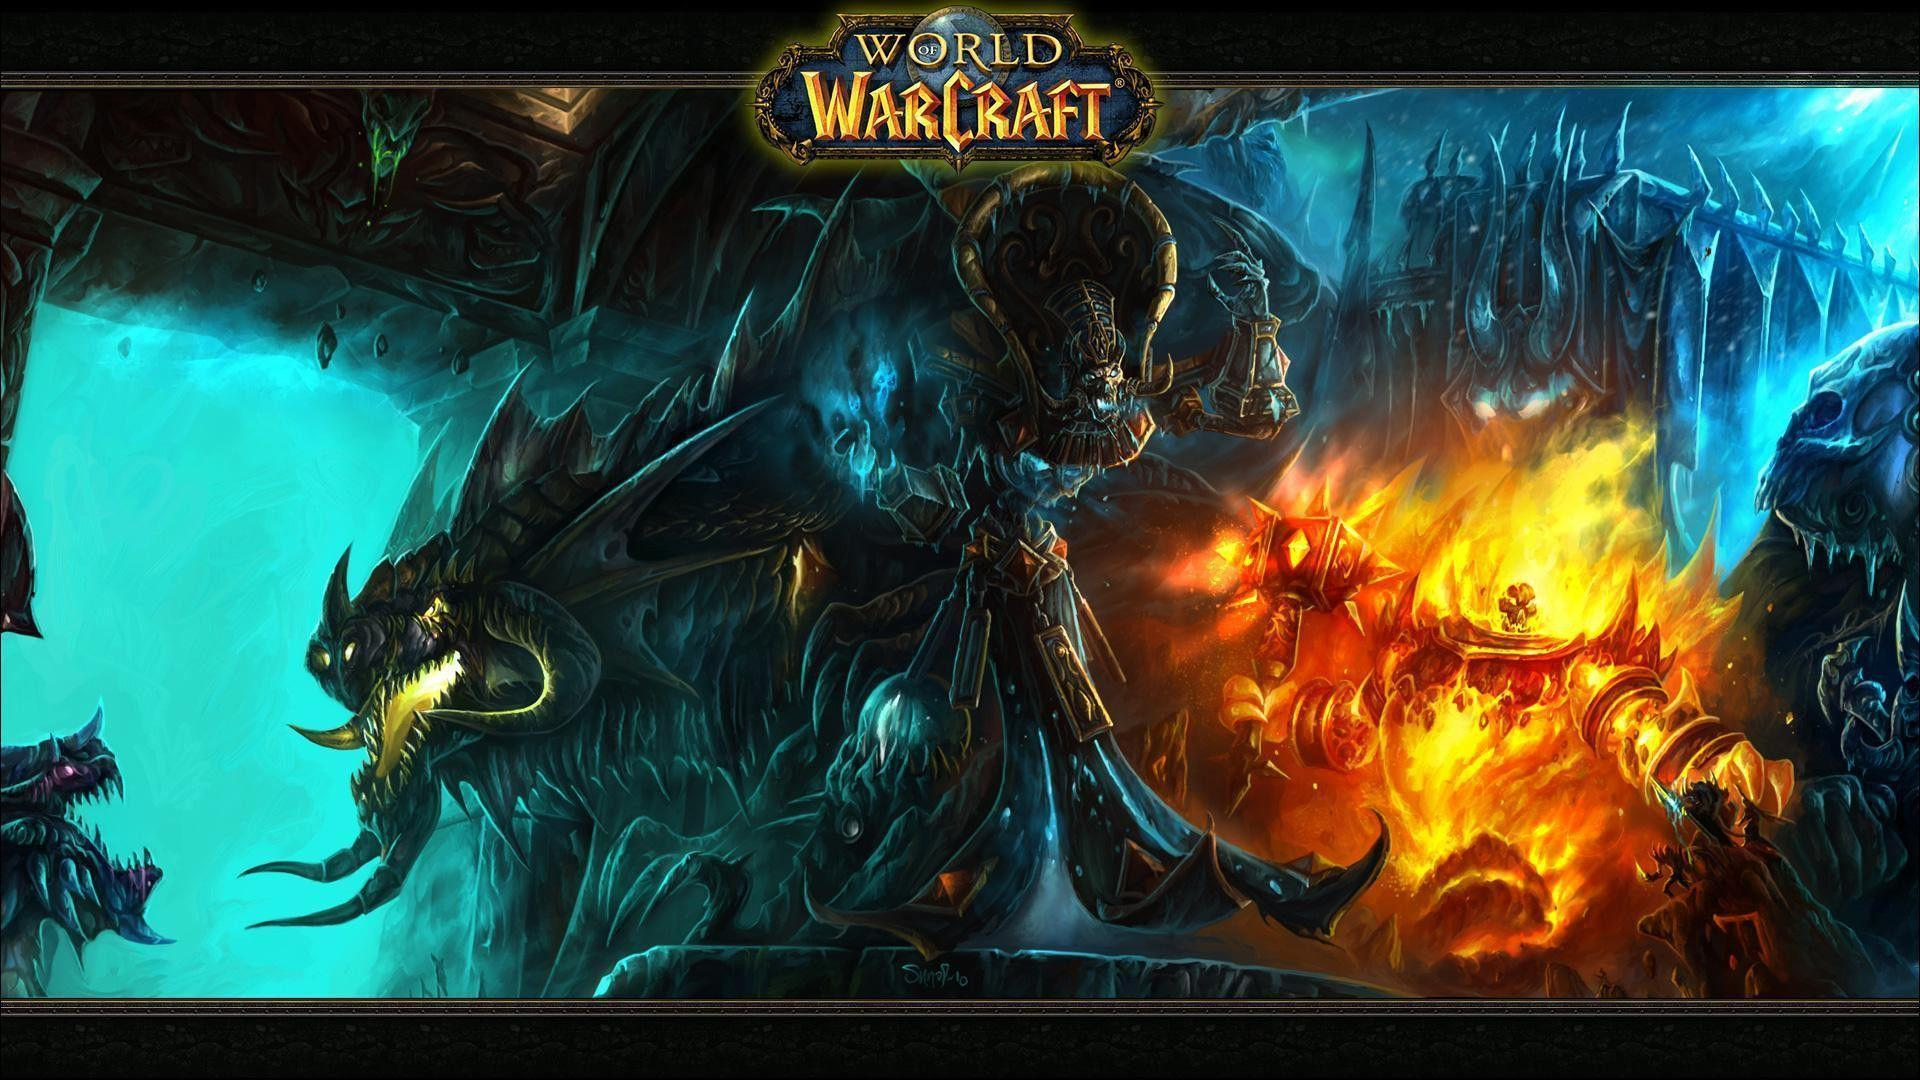 Hd Wallpapers 1080p World Of Warcraft